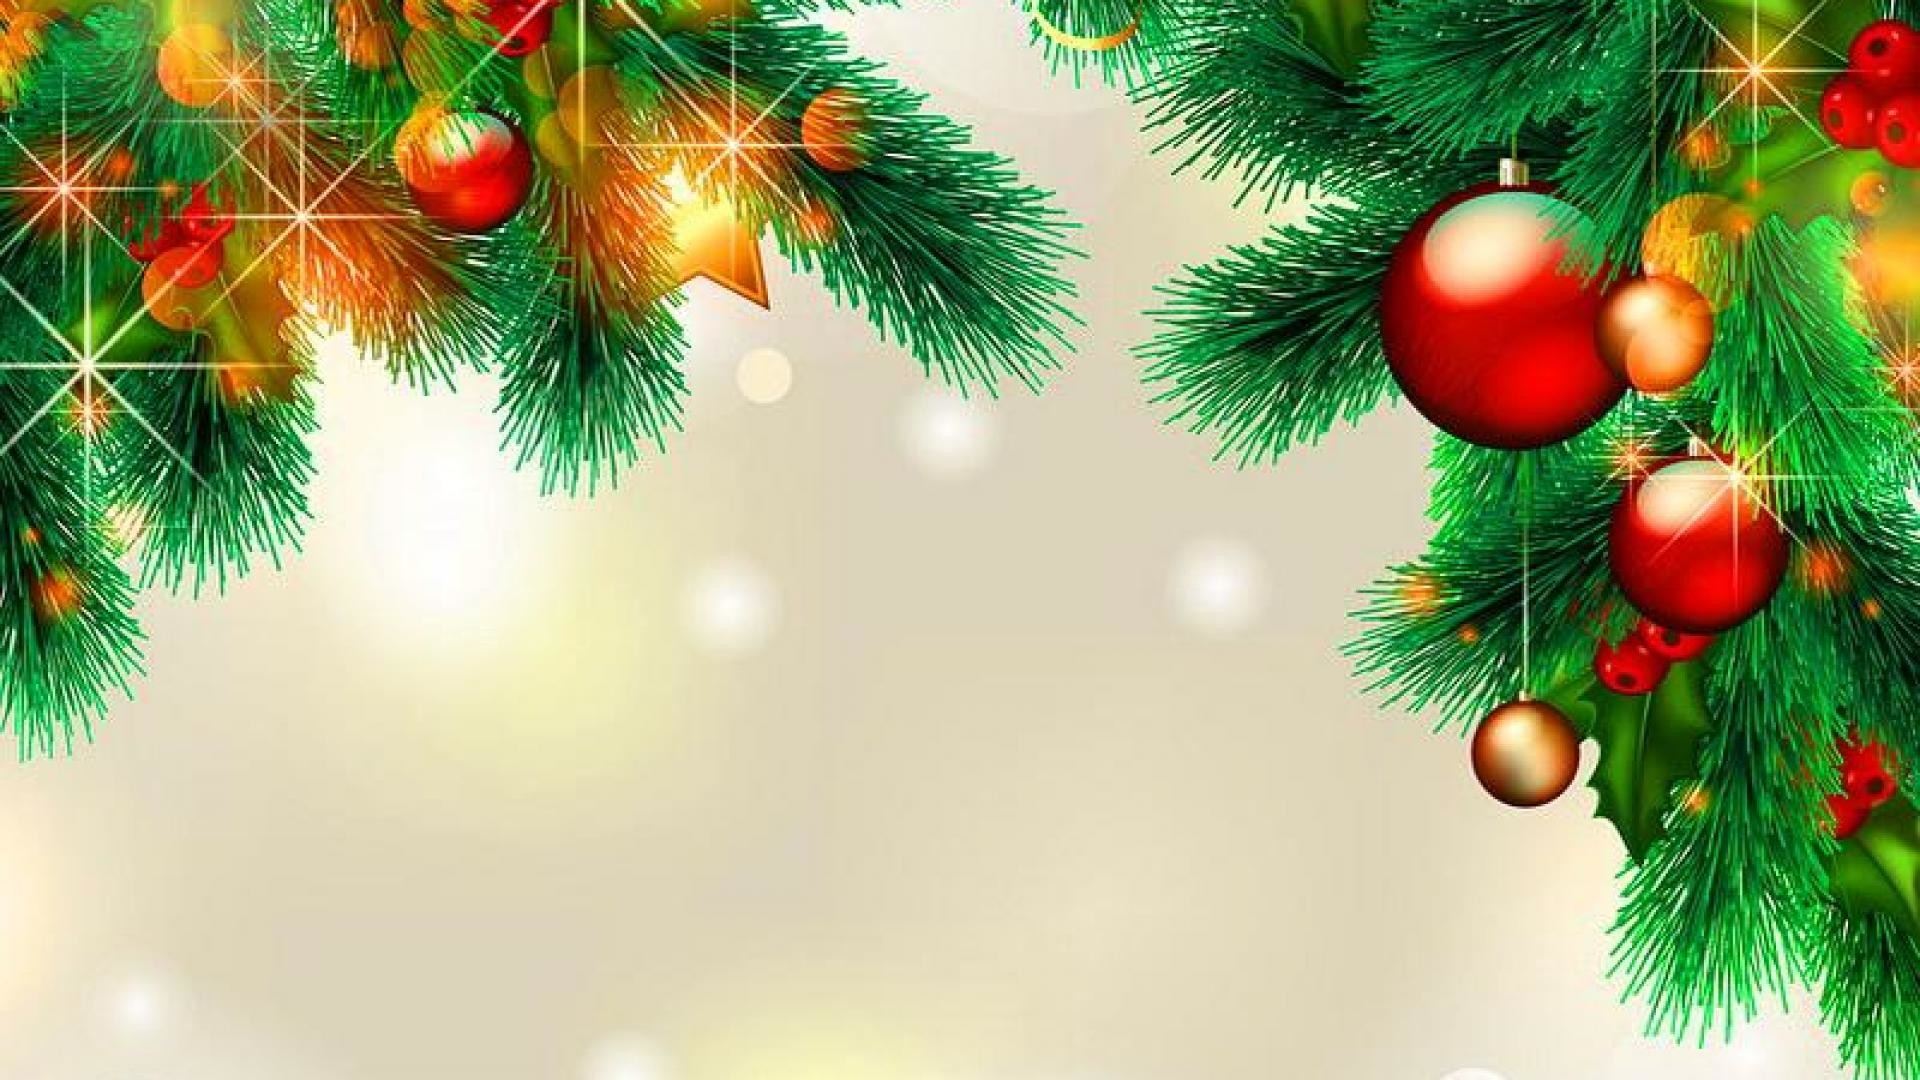 1920x1080 Christmas Wallpaper Border (04)